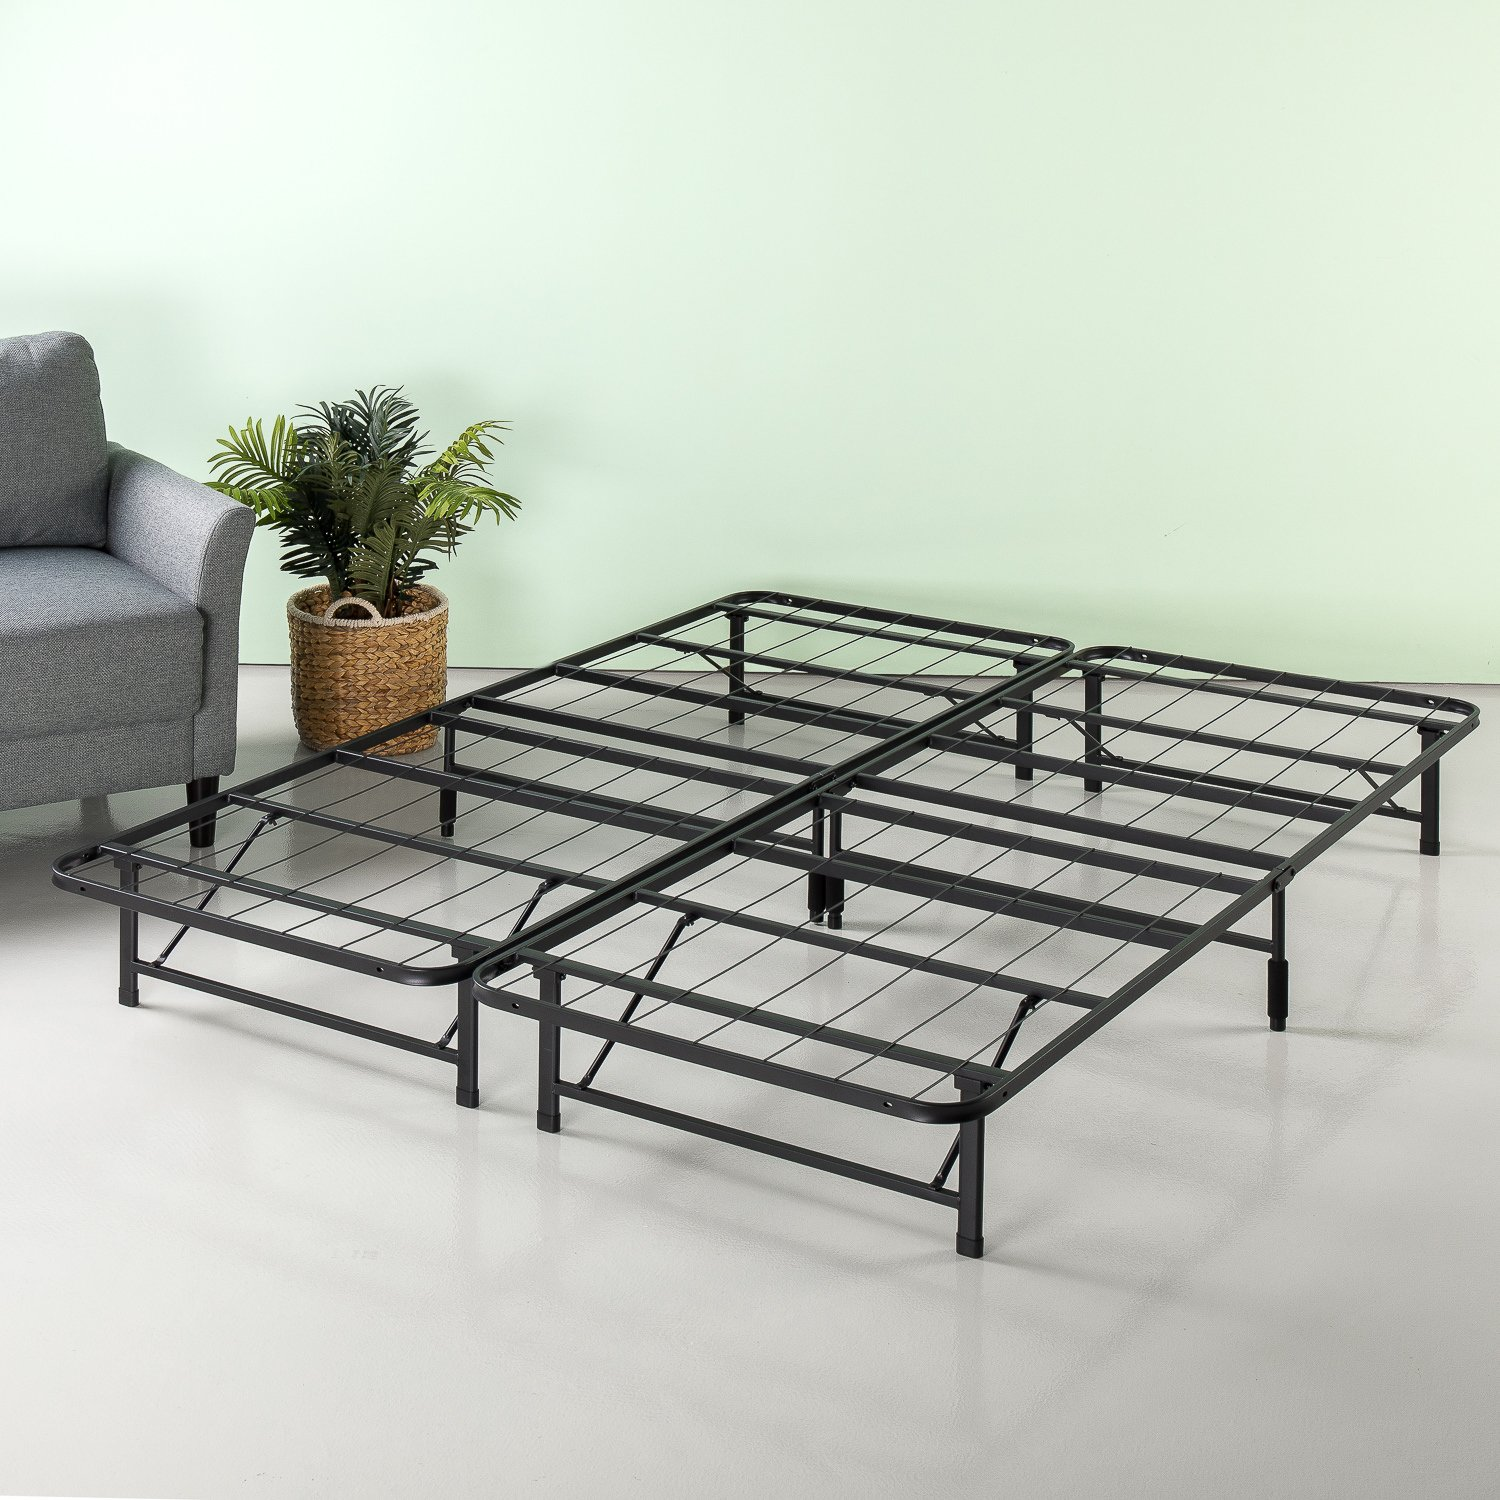 Zinus 12 Inch SmartBase Mattress Foundation, Platform Bed Frame, Box Spring Replacement, Quiet Noise-Free, King by Zinus